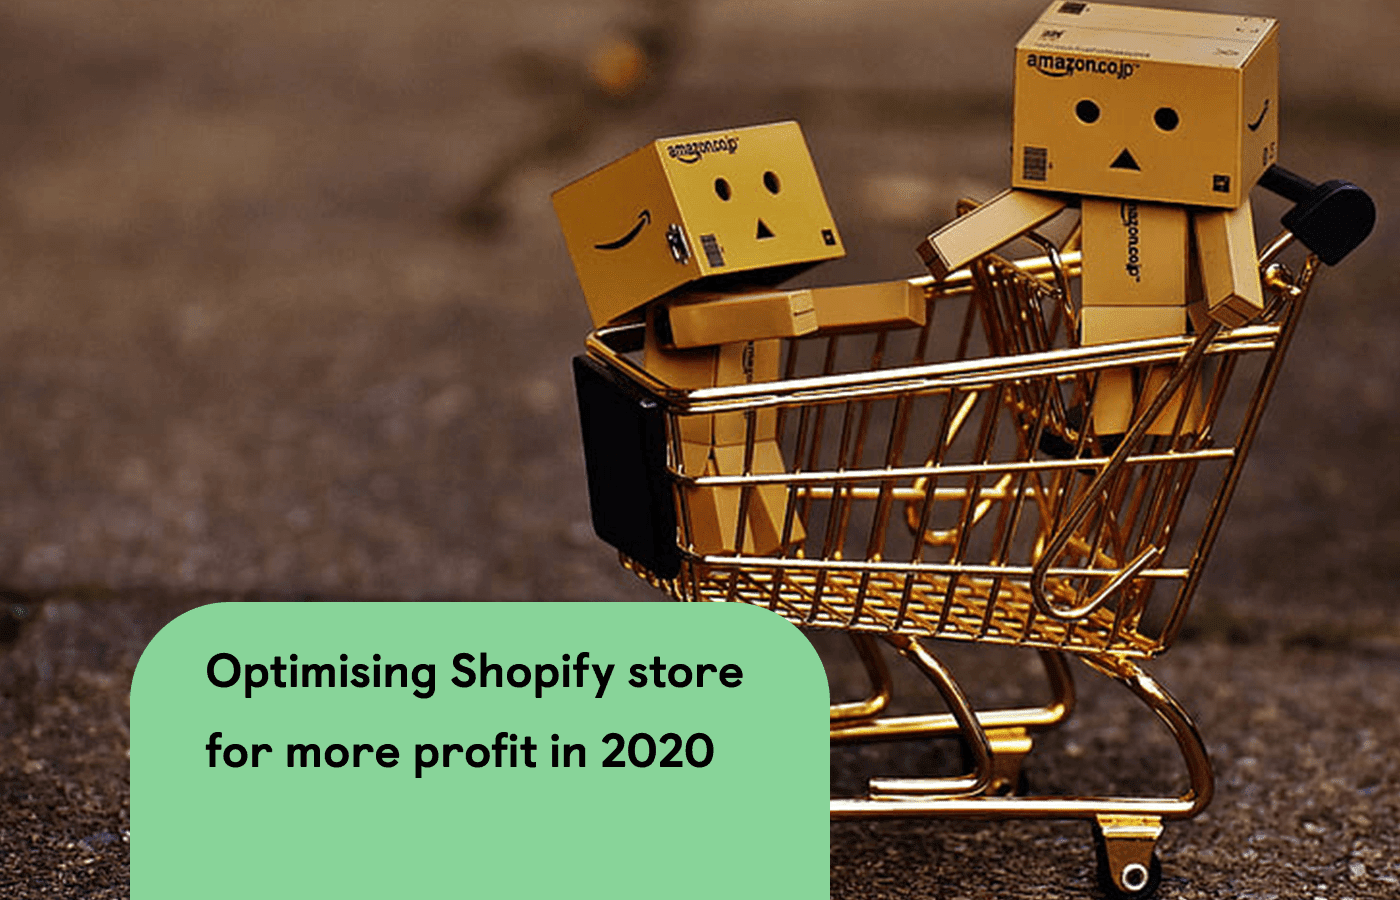 How to optimize your Shopify store for more profit in 2020?